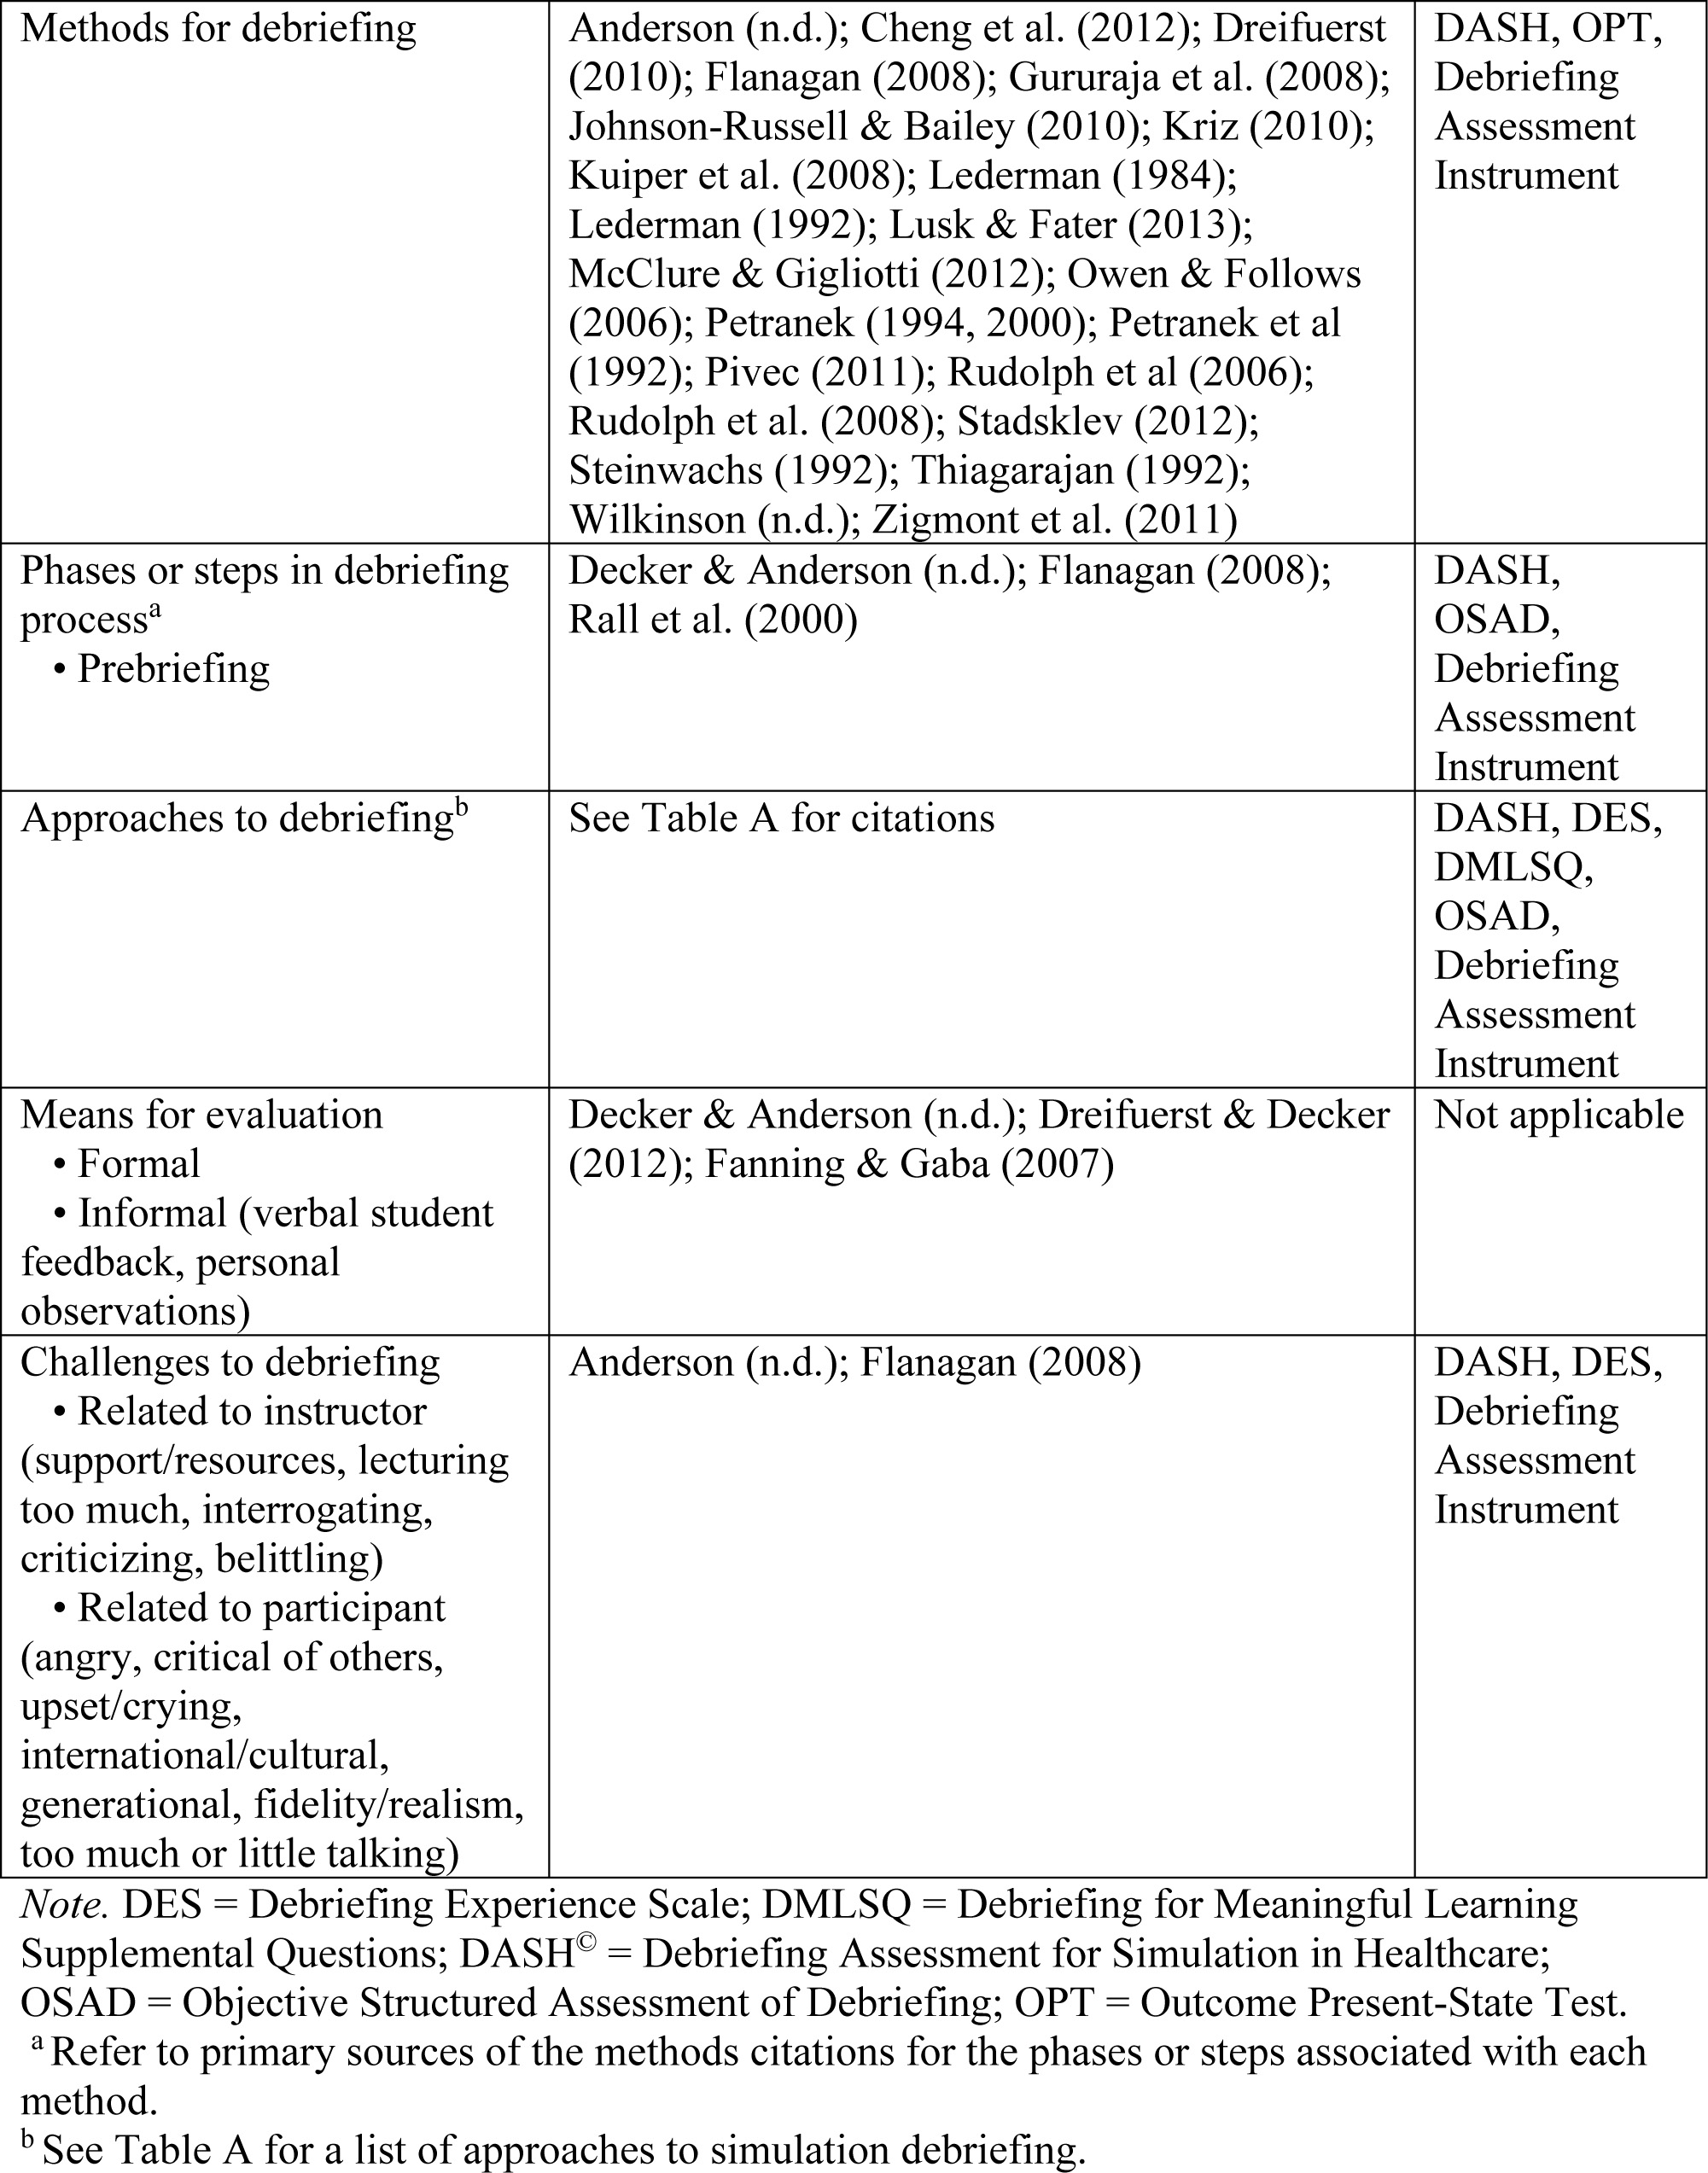 Methods And Evaluations For Simulation Debriefing In